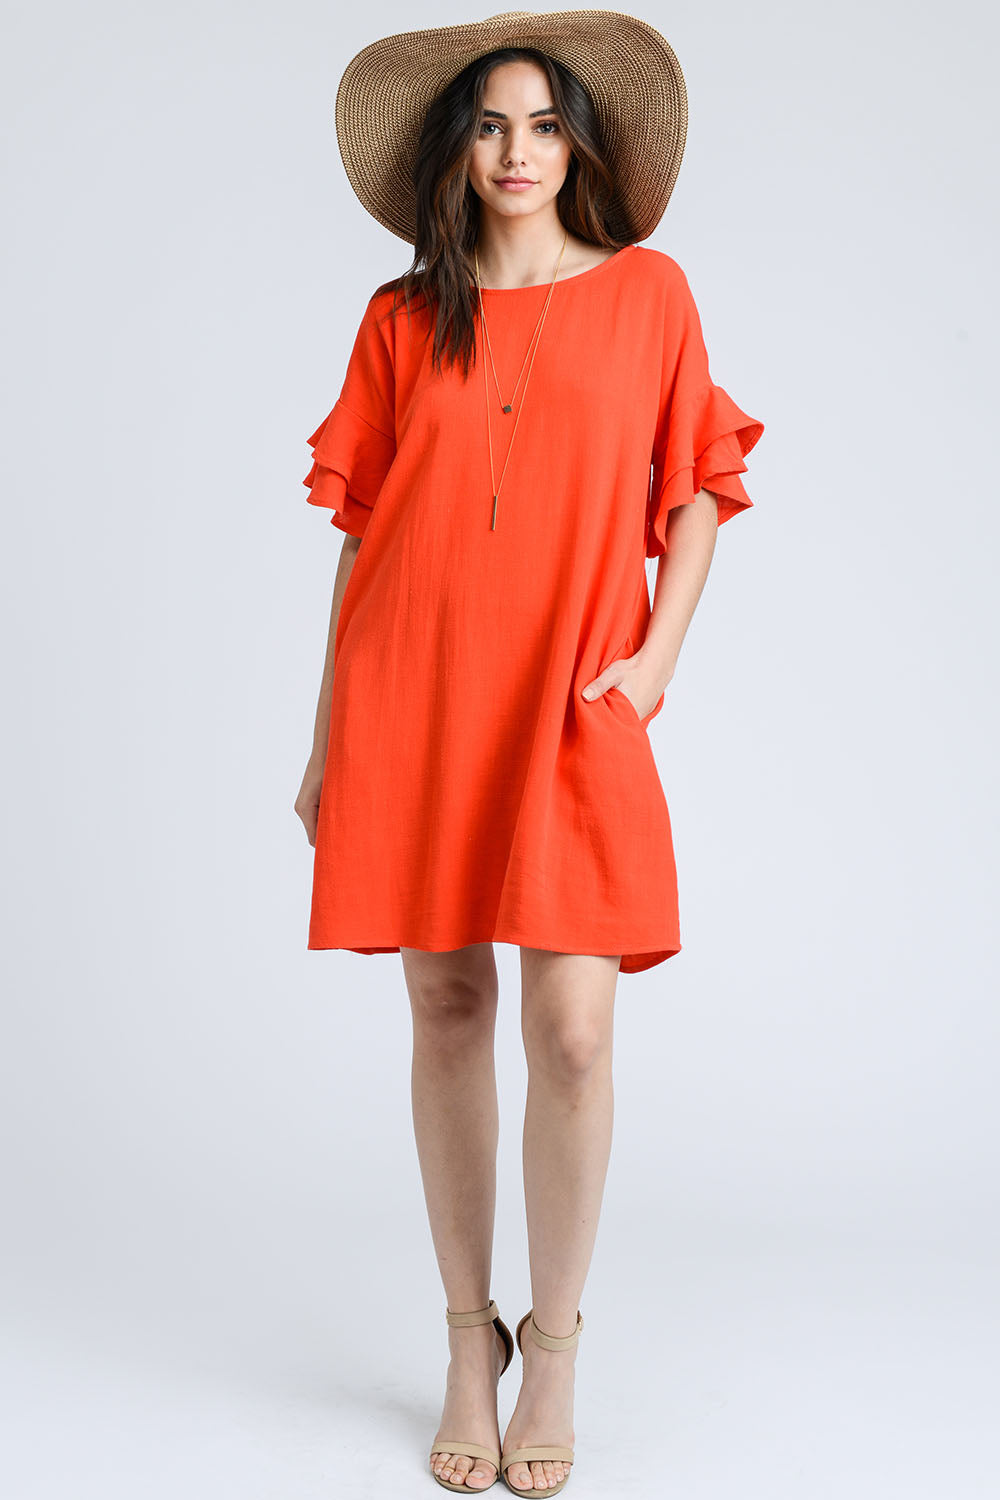 7c5cb79df8b LINEN RUFFLED SLEEVE SHIFT DRESS WITH POCKET-TOMATO – Cherry On Boutique